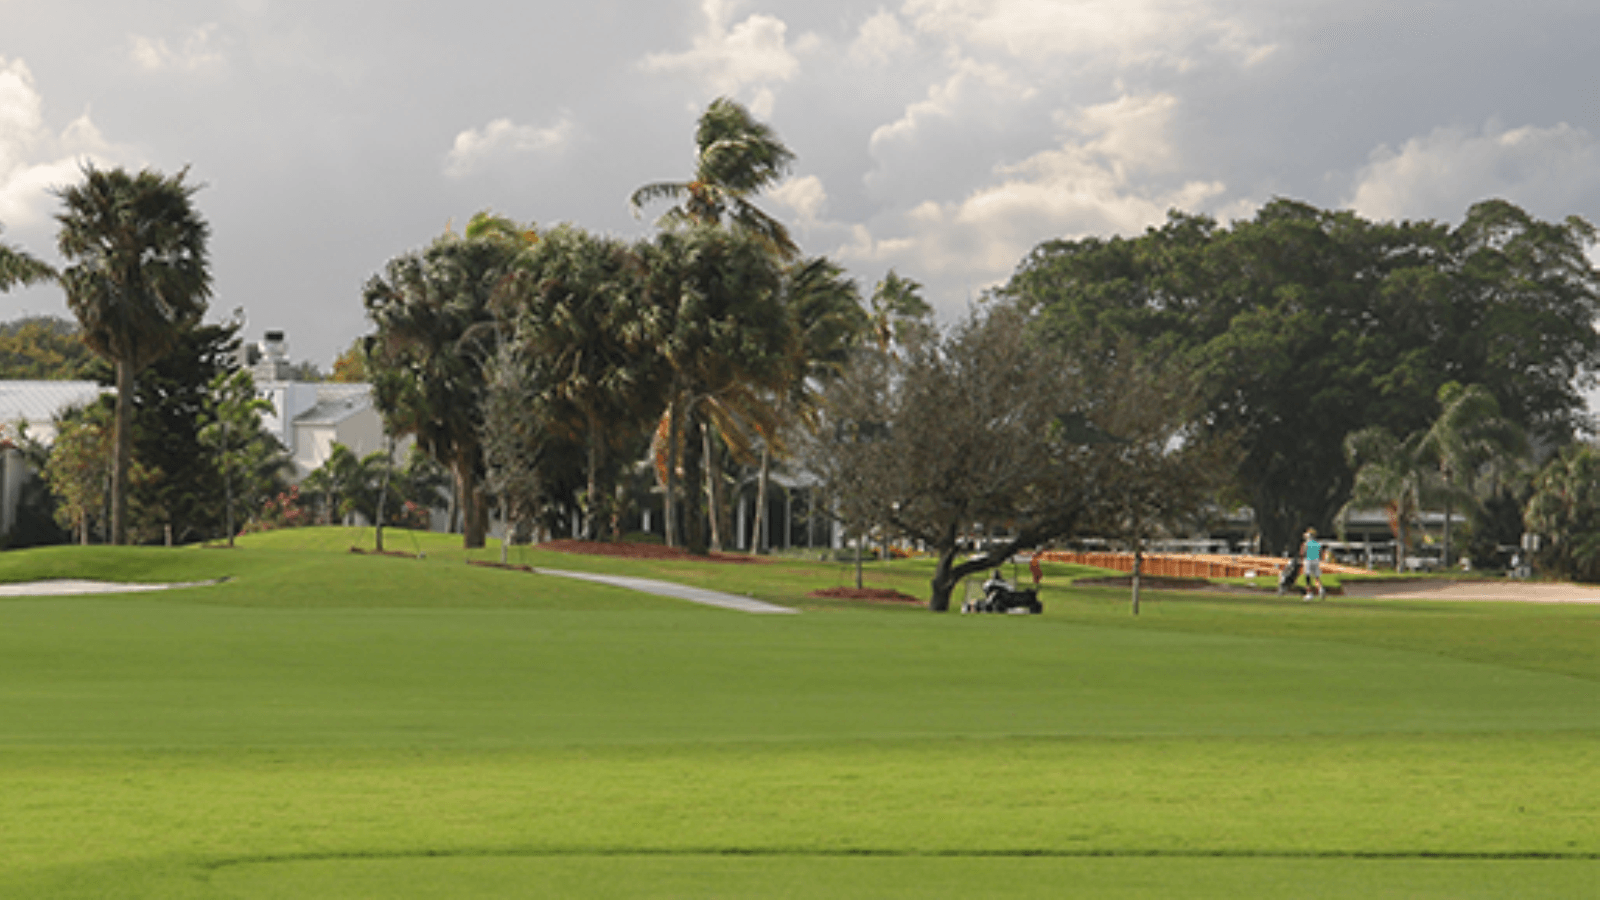 Sheraton Suites Fort Lauderdale at Cypress Creek - Pompano Beach Municipal Golf Course